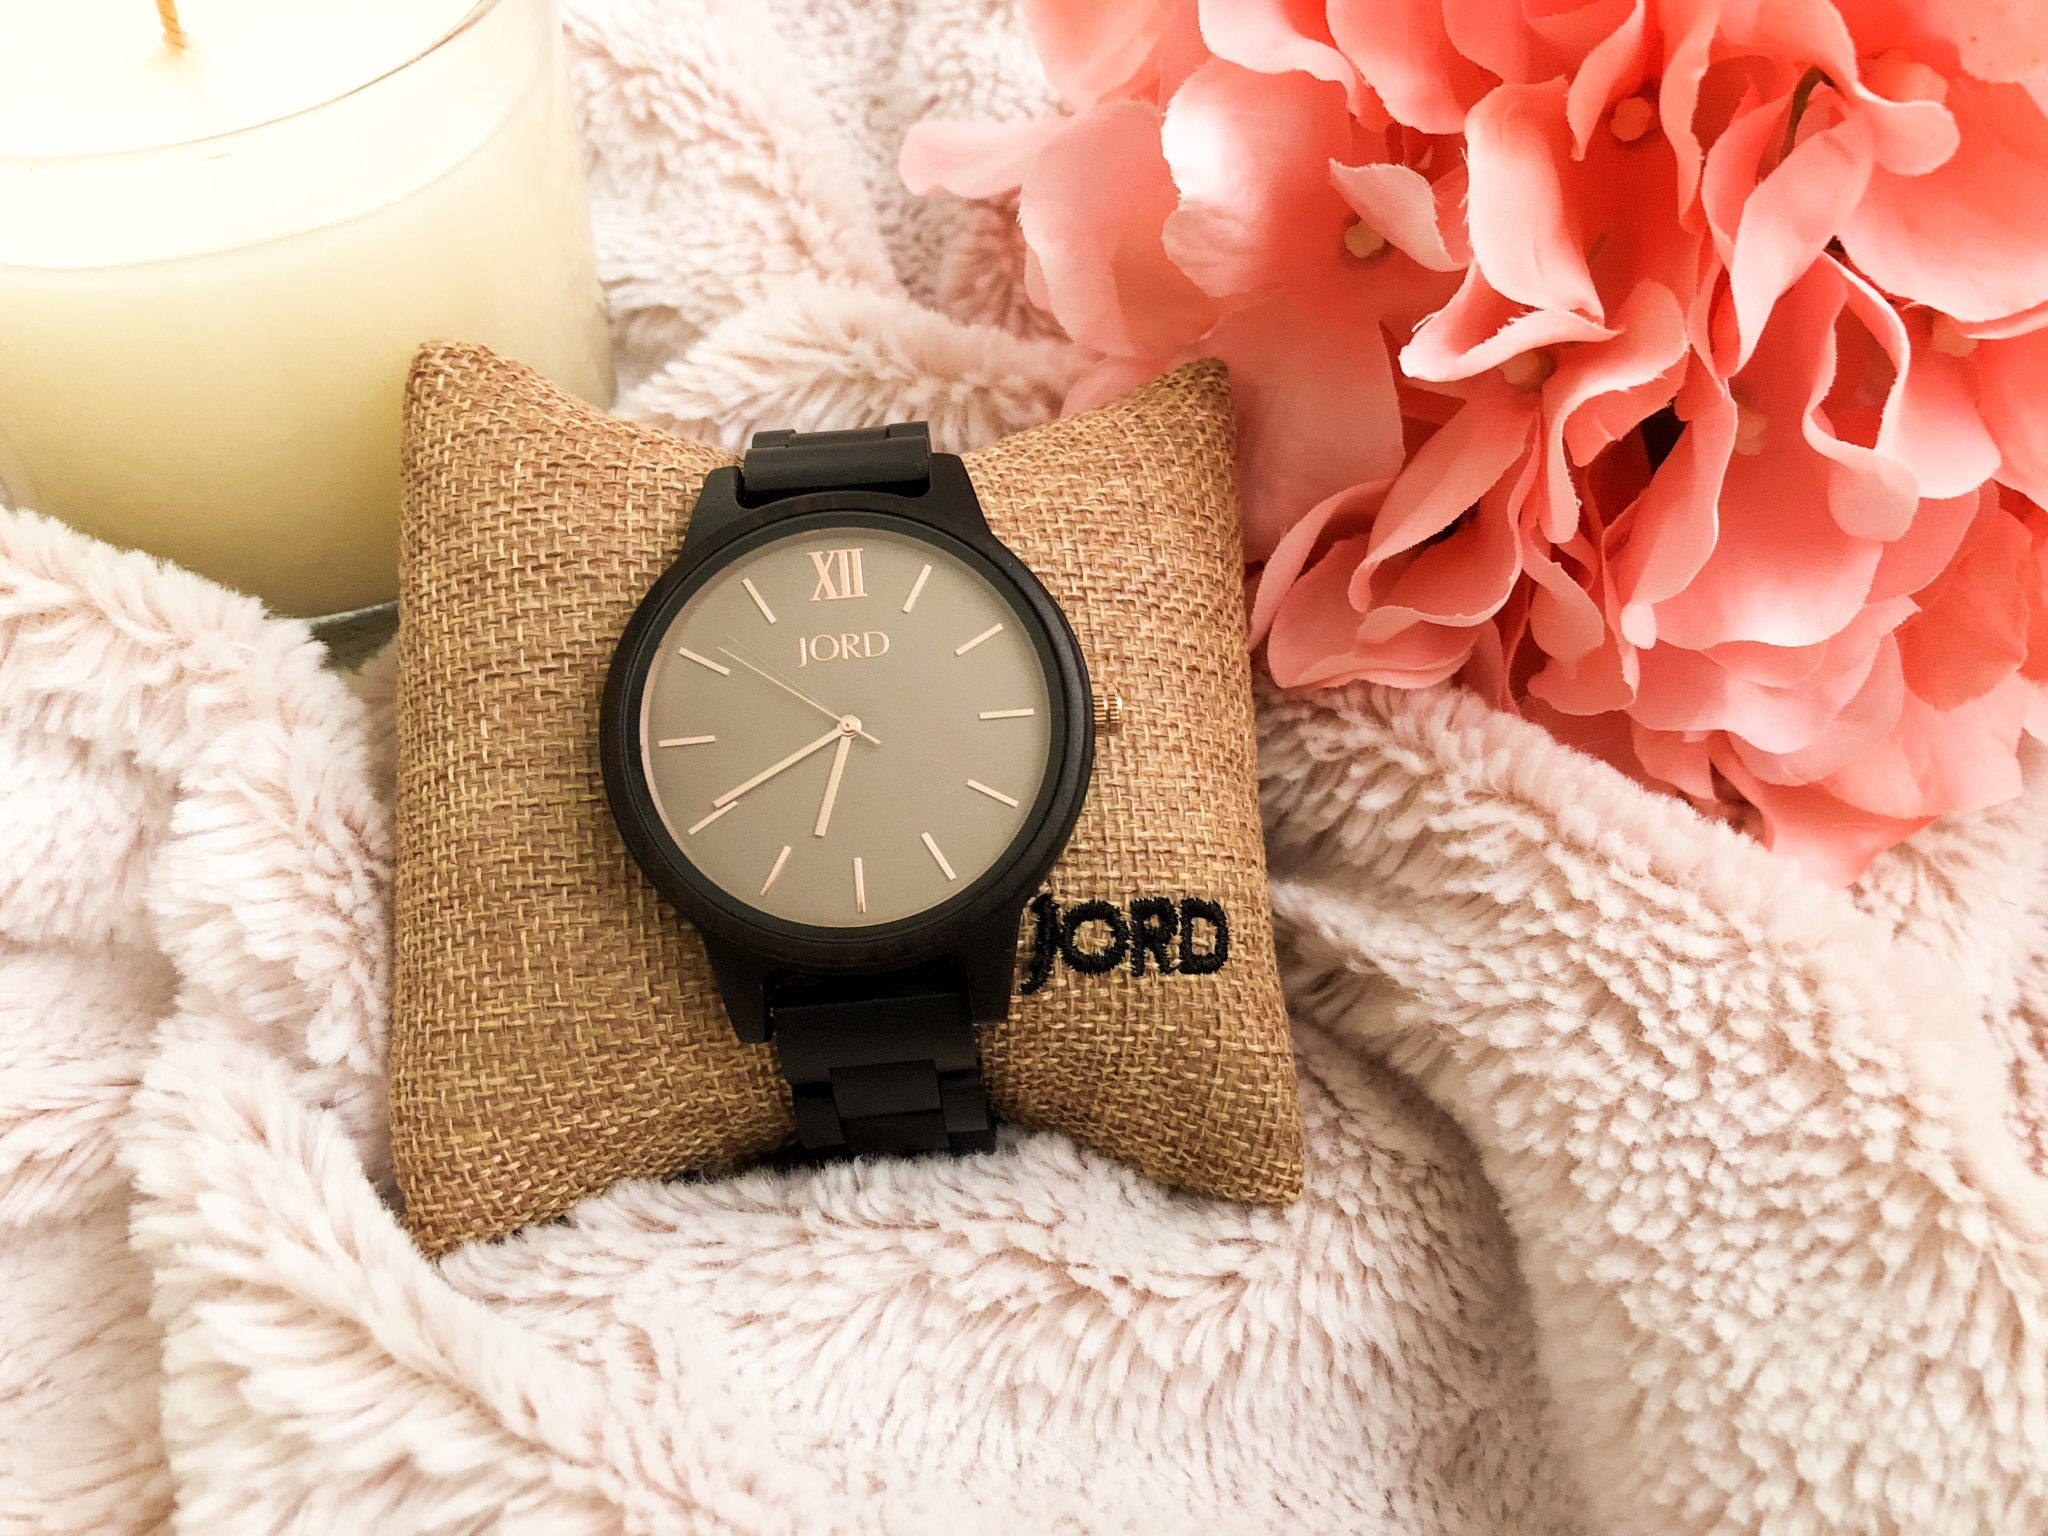 A favorite everyday accessory plus a giveaway #jordwatch #woodenwatches